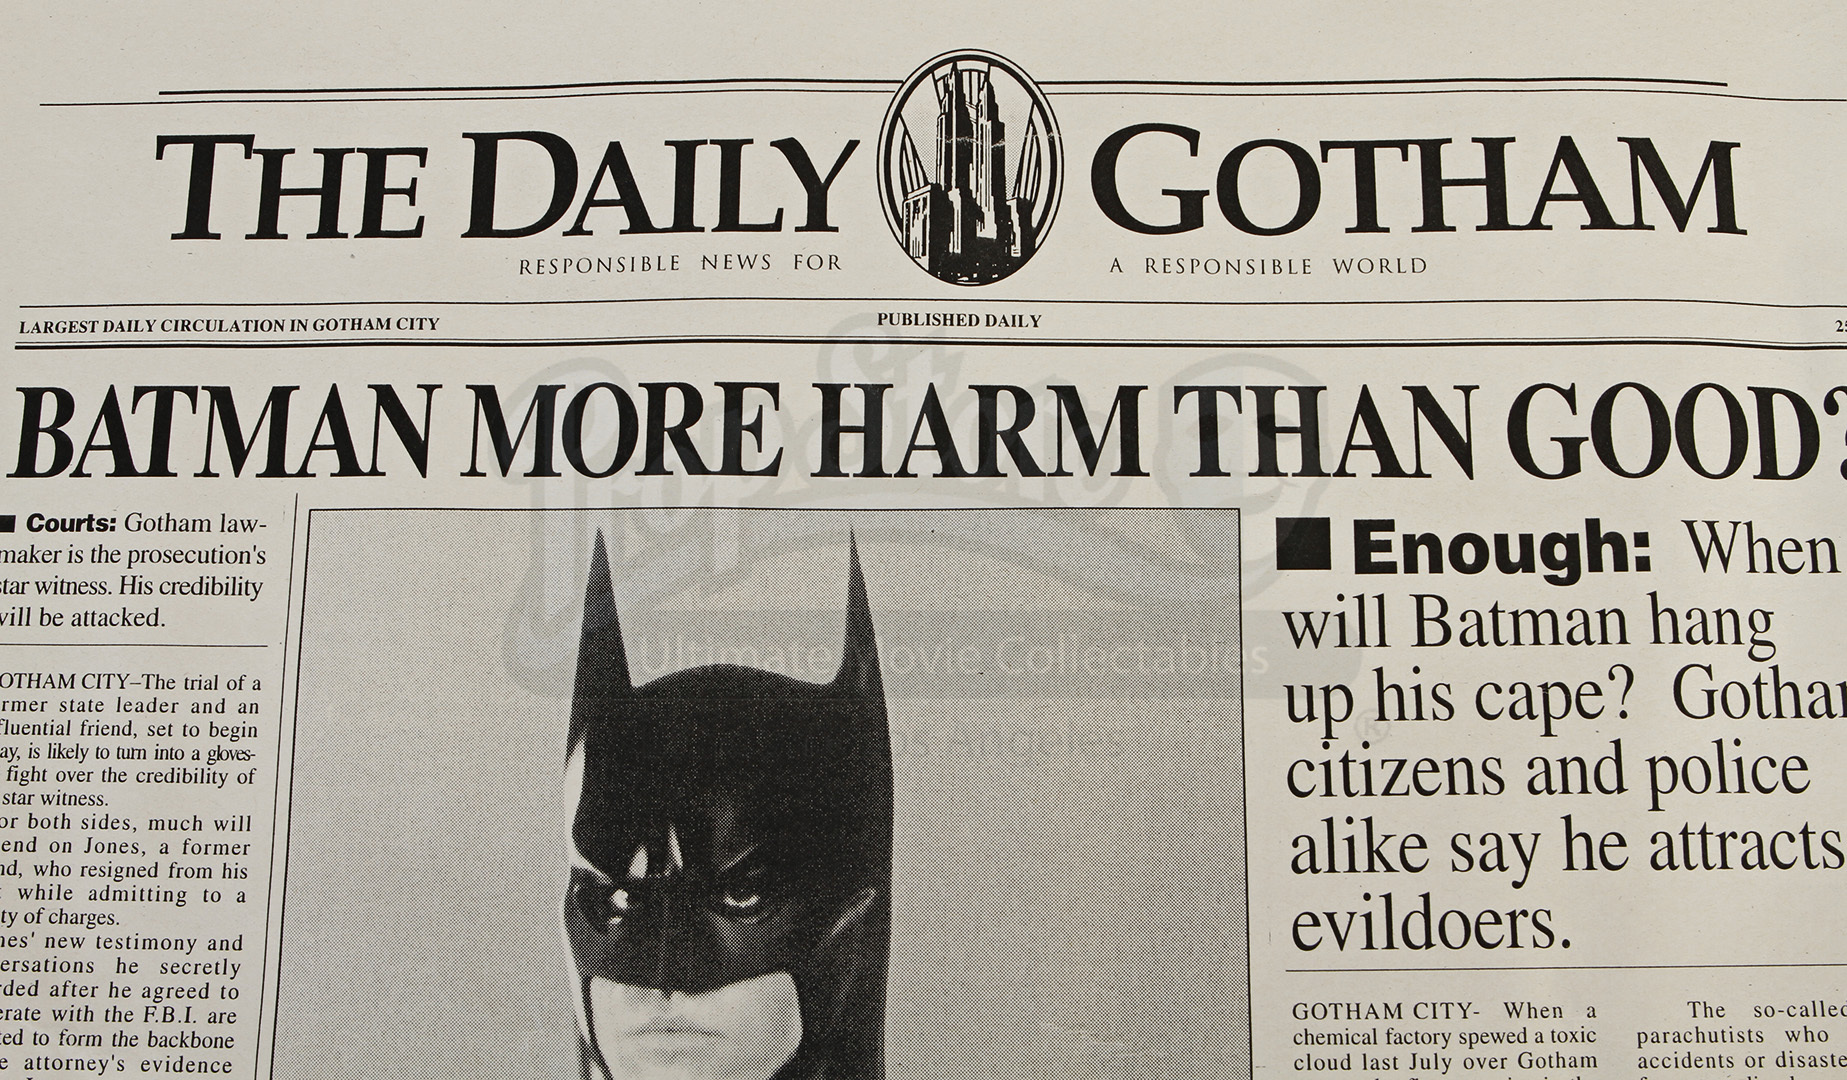 Unfinished Daily Gotham Newspaper Front Page